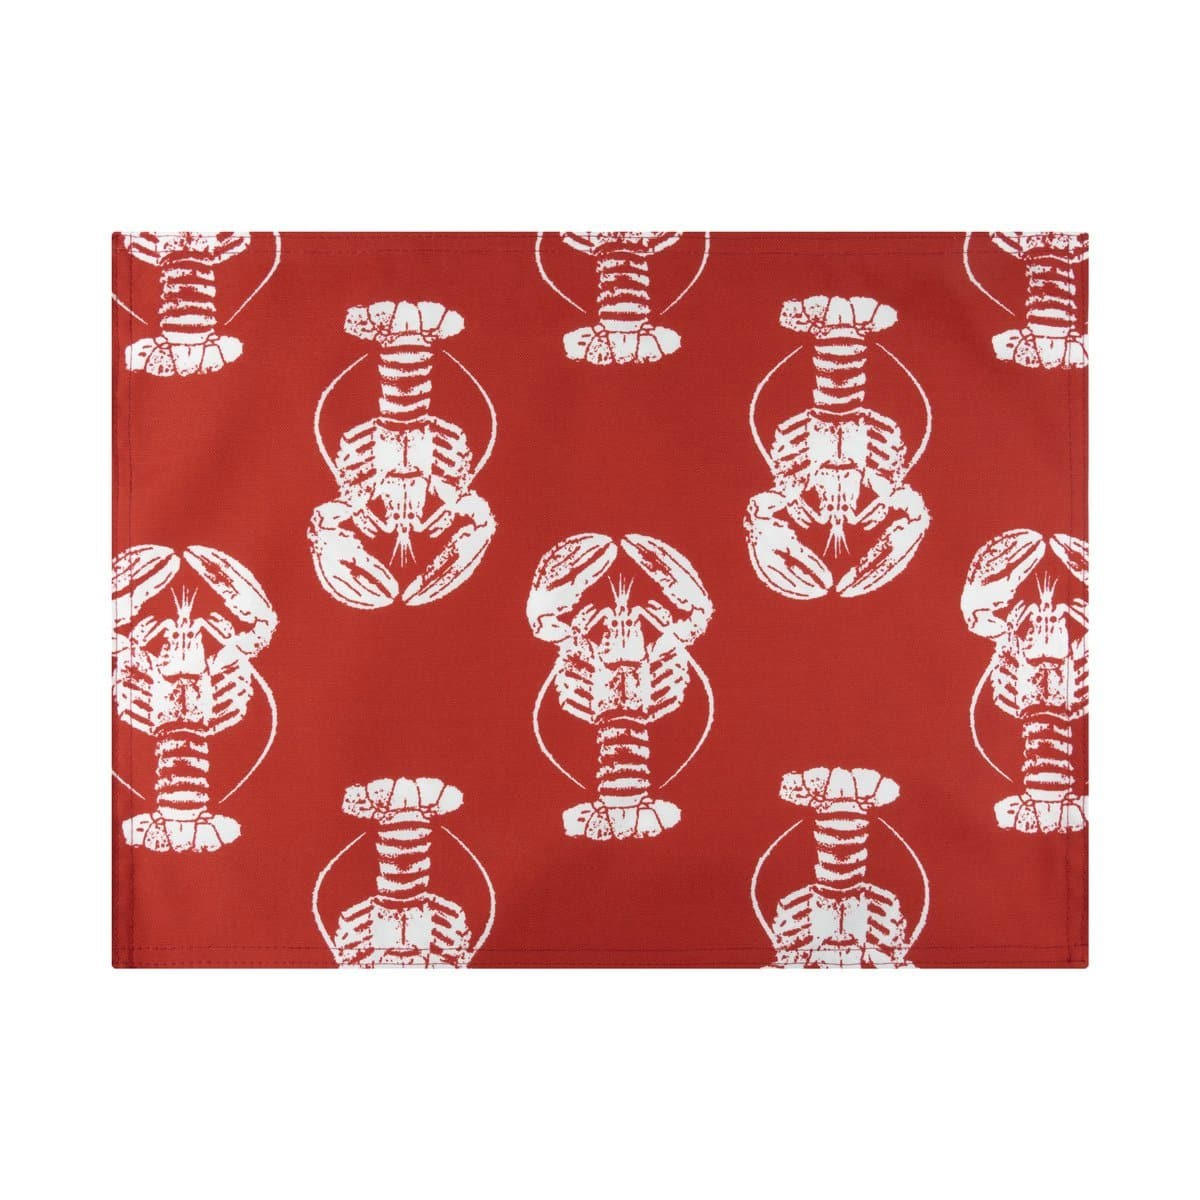 Sea Shore Lobster Red Placemats - Set of 4 - Reversible, Stain Resistant